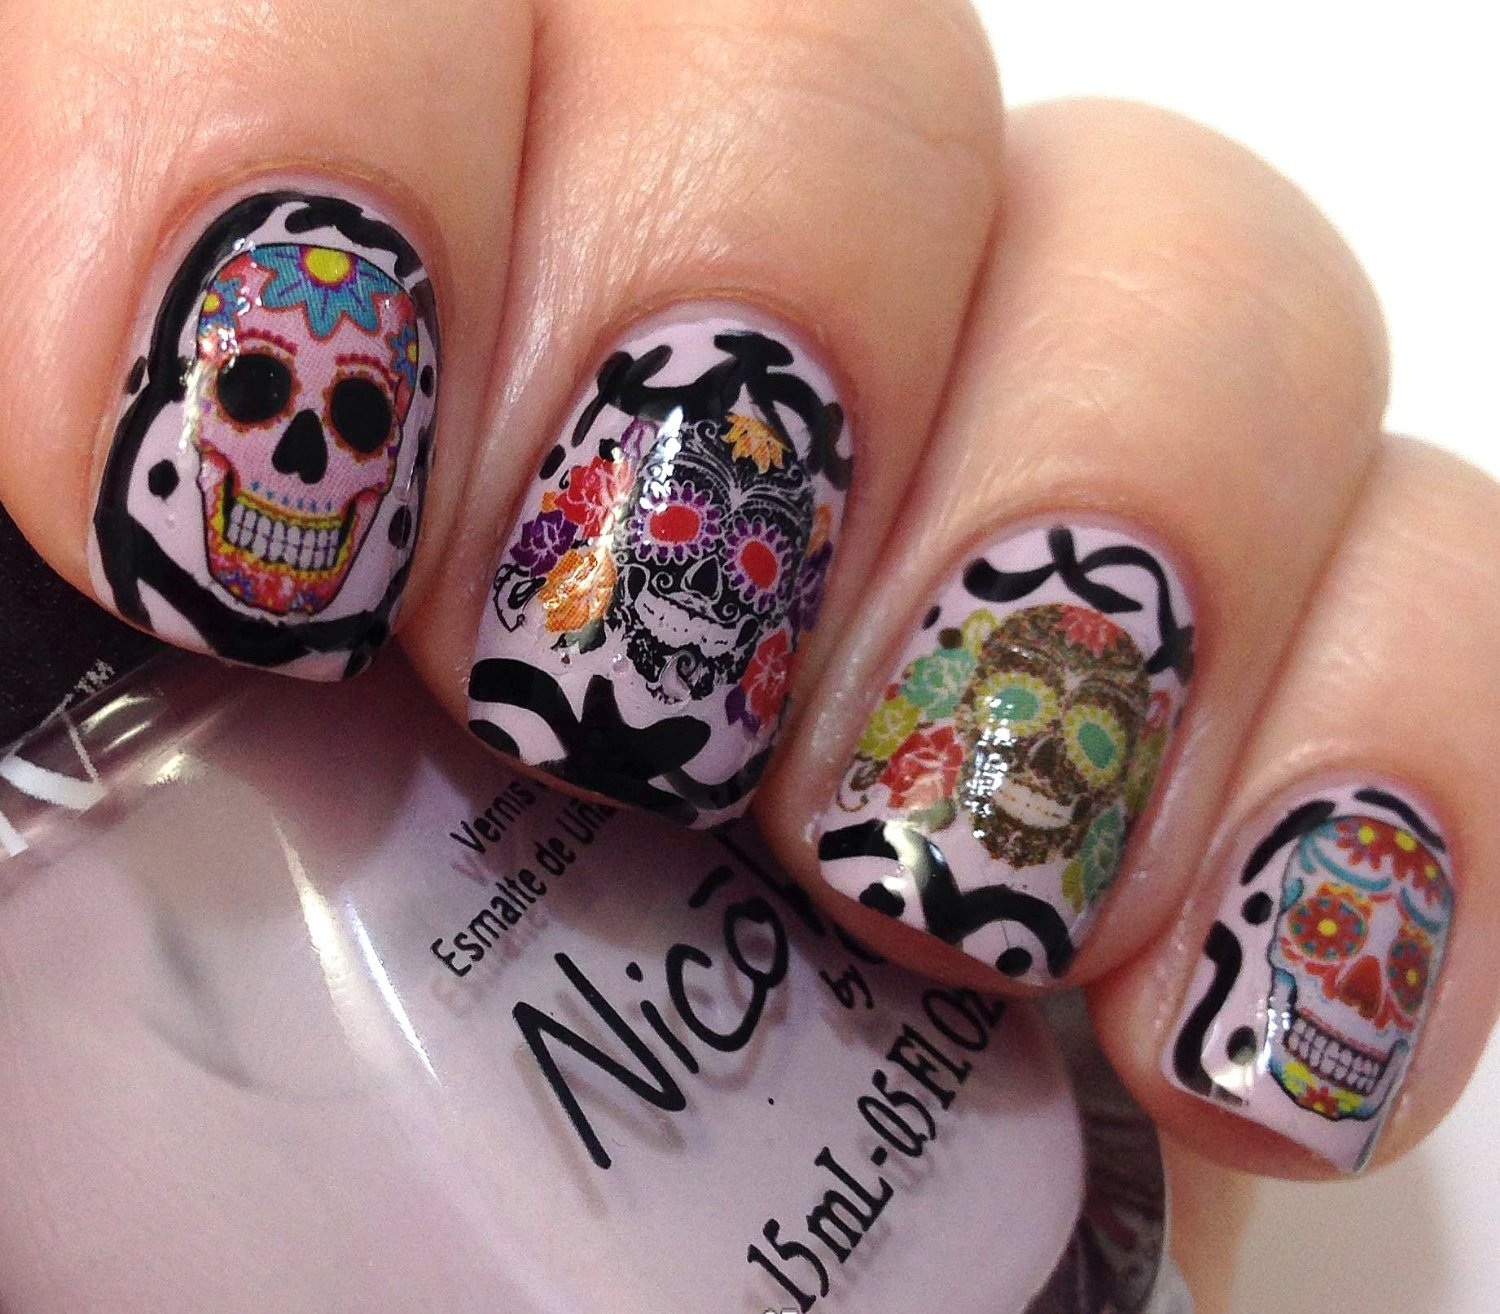 Amazon sugar skull nail decals assortment 1 water slide nail amazon sugar skull nail decals assortment 1 water slide nail art decals salon quality beauty prinsesfo Images